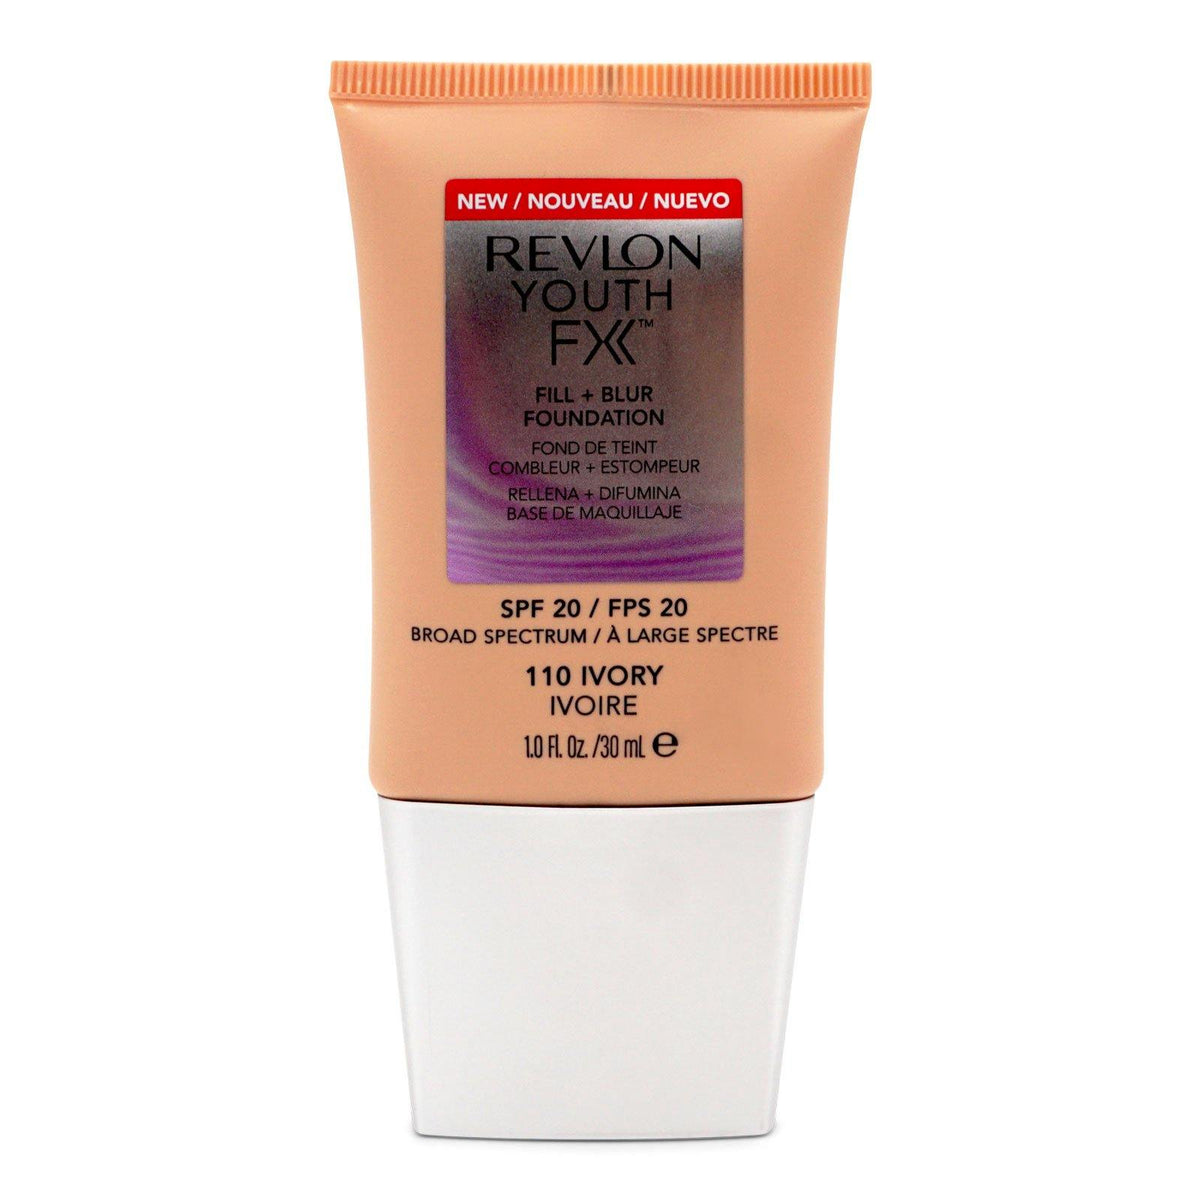 Revlon YOUTH FX FILL + BLUR SPF 20 FOUNDATION (24/cs)